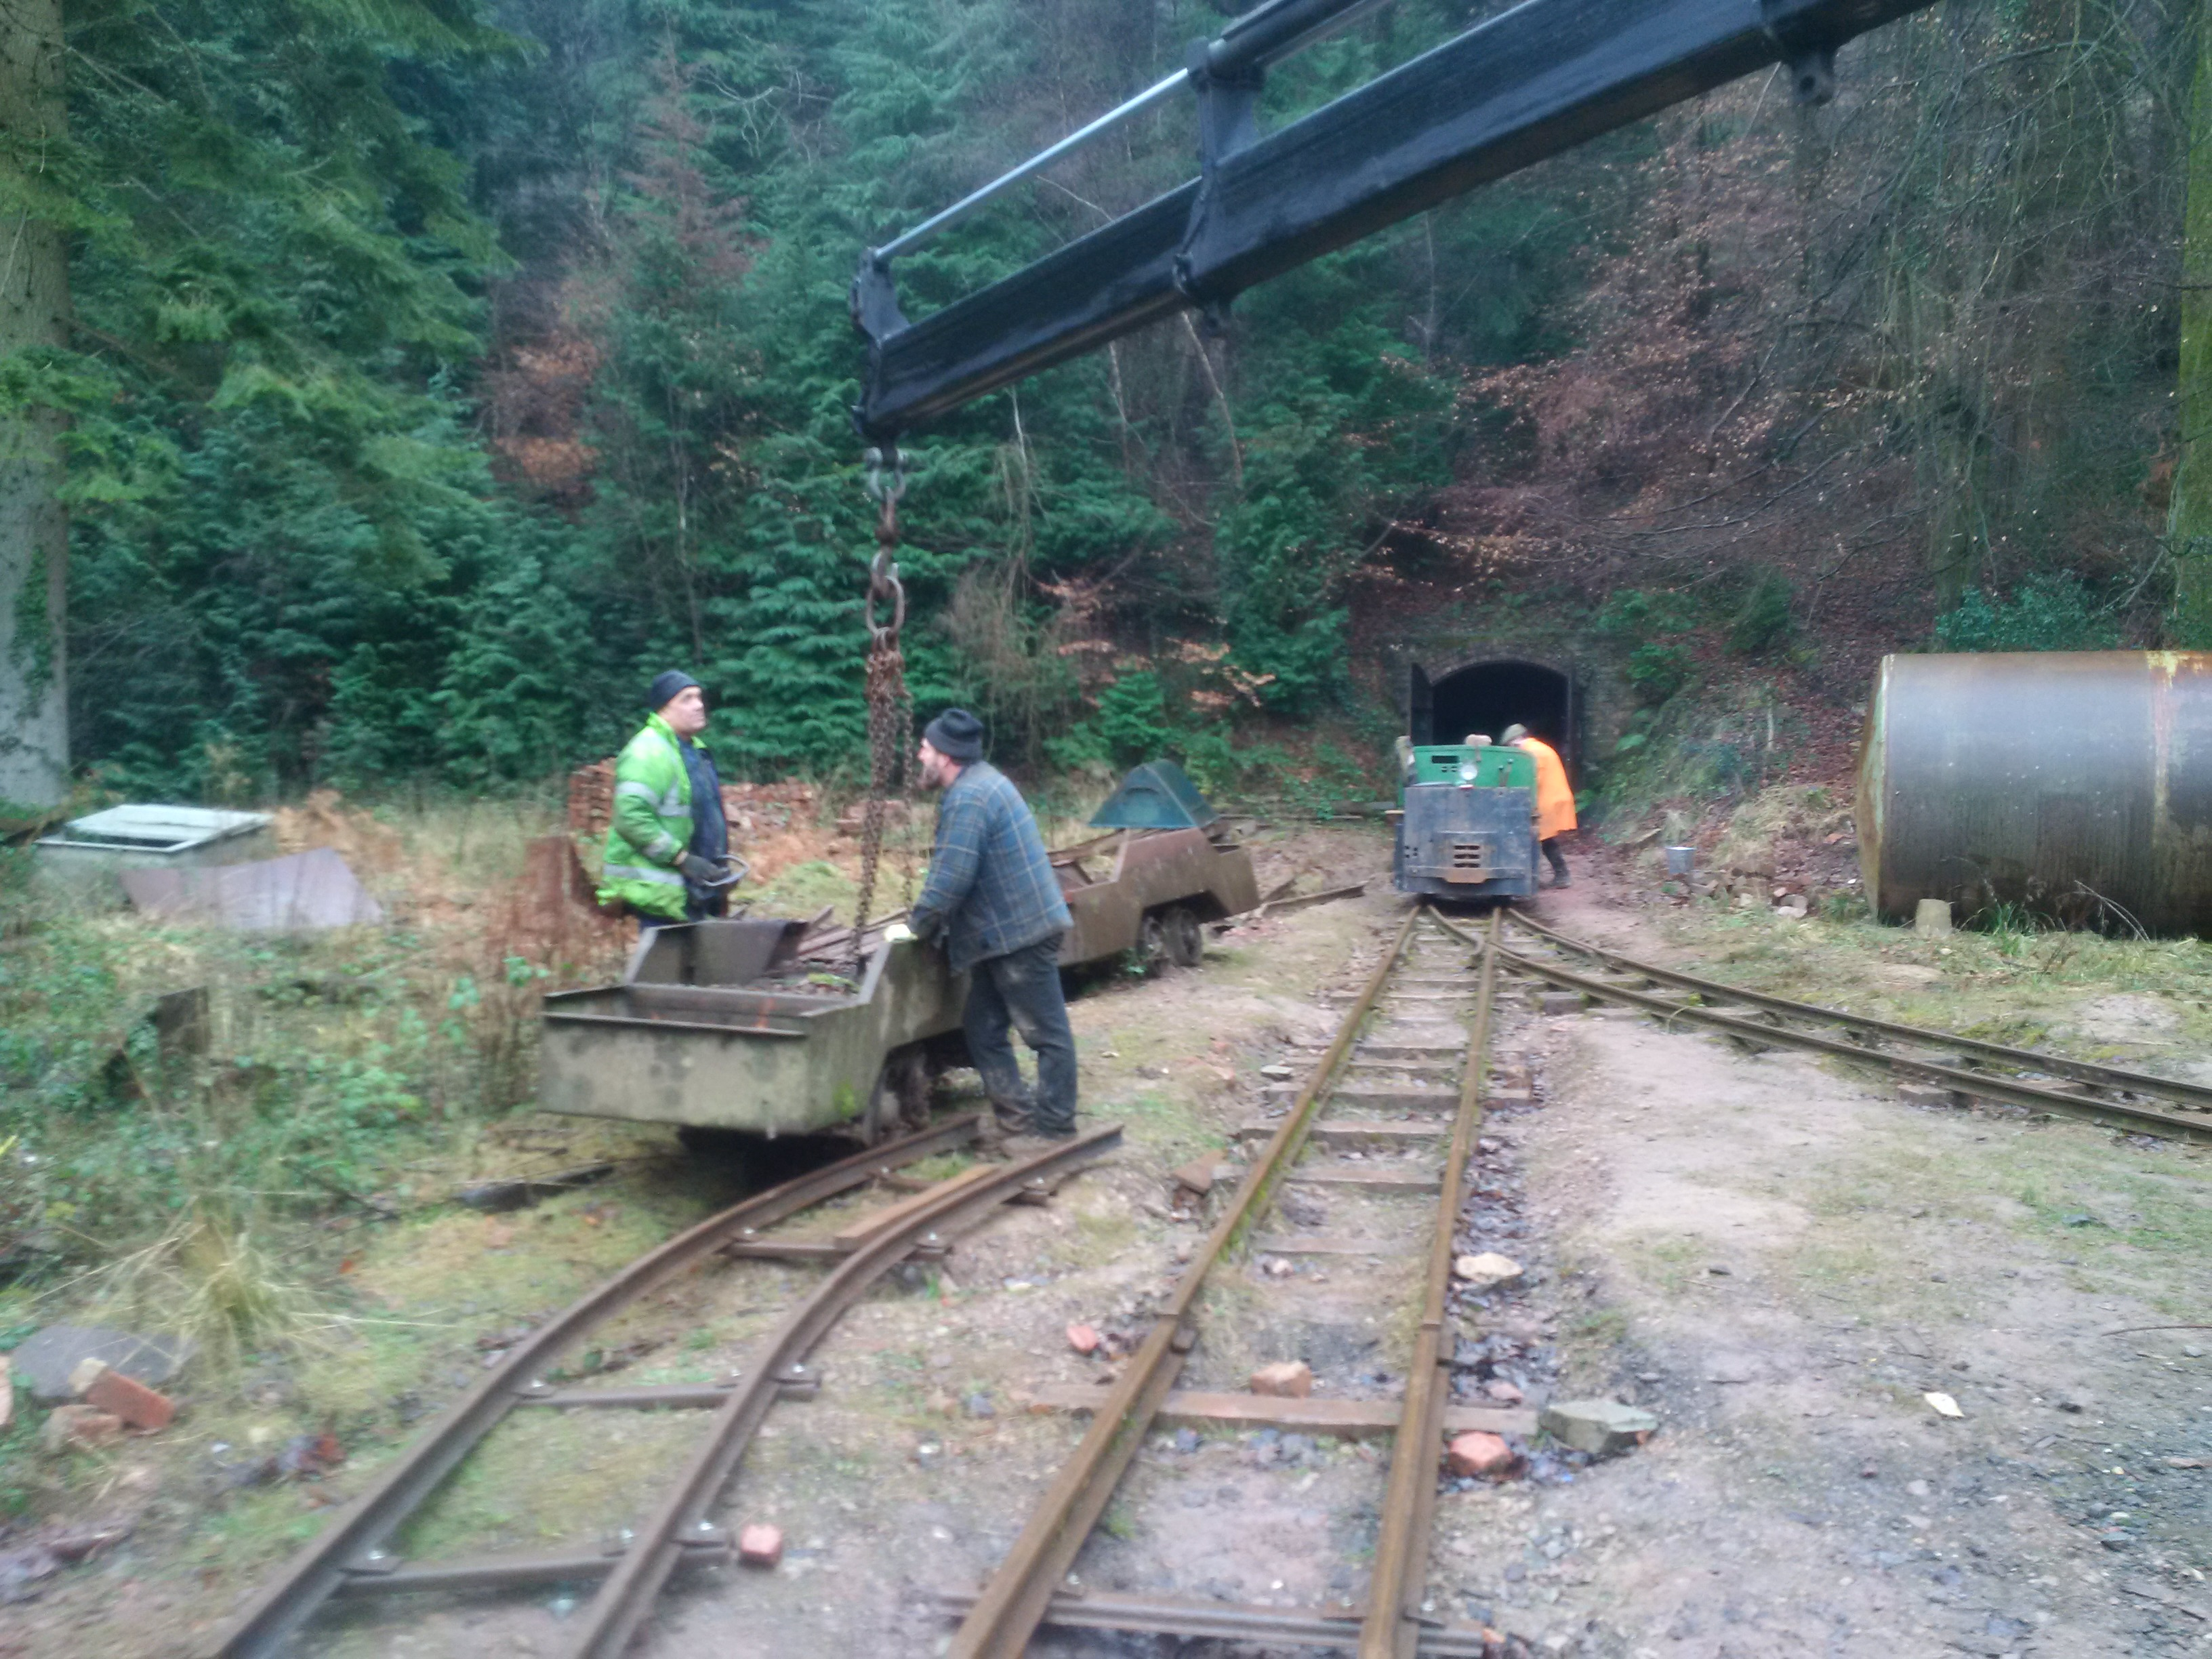 4-wheel bogie is lifted into position